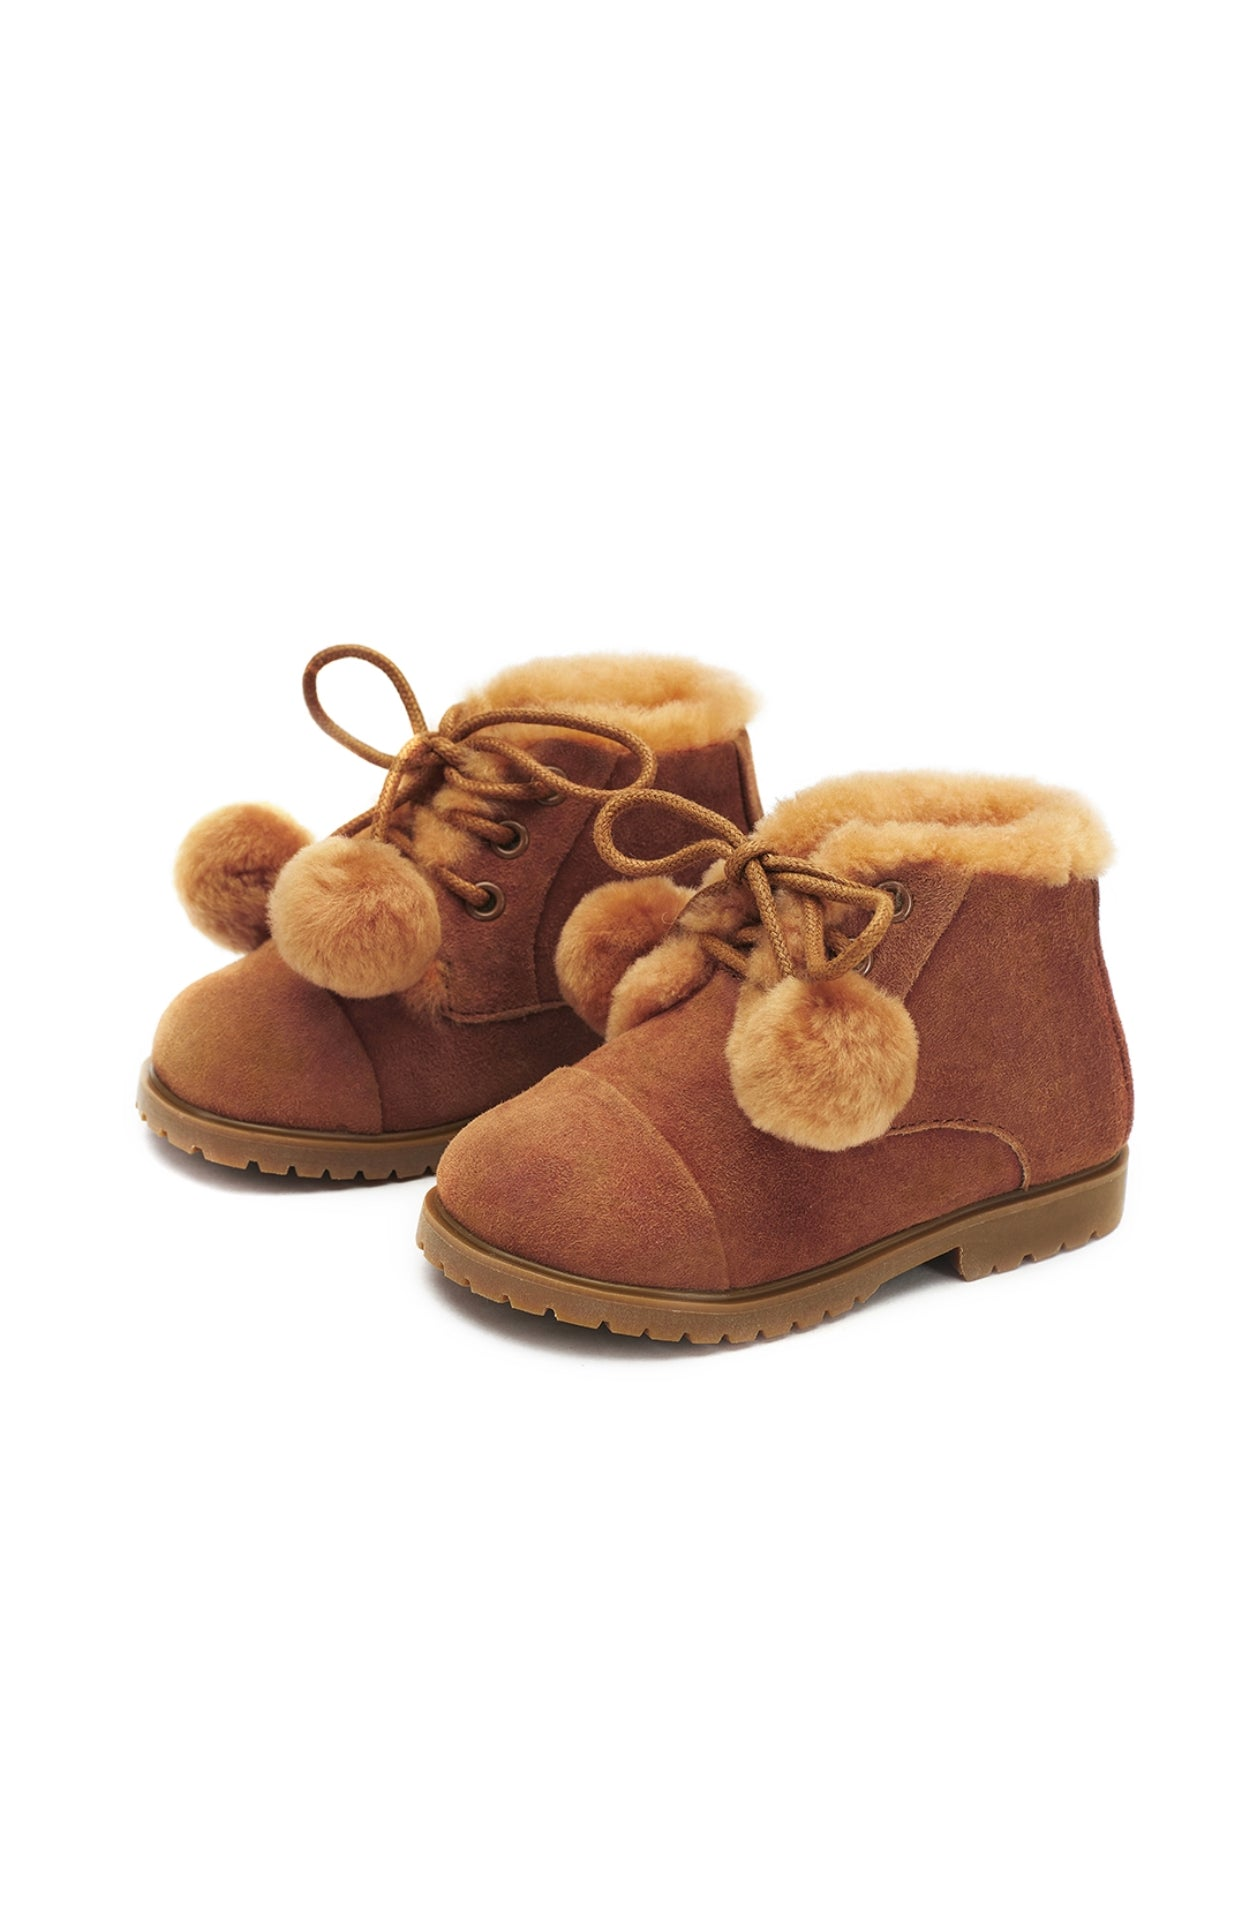 Age of Innocence Zoey pompom boots in Brown